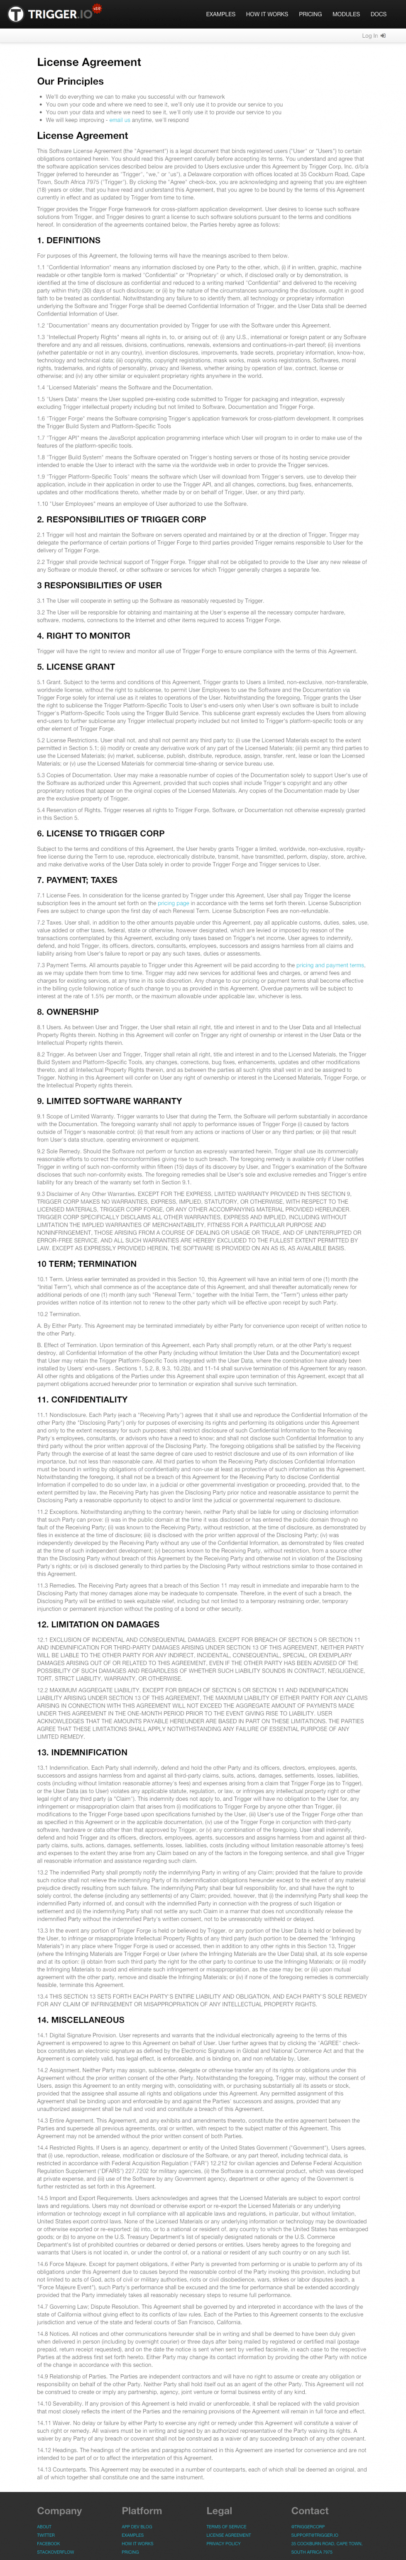 free 2020 eula template generator mobile app license agreement template example